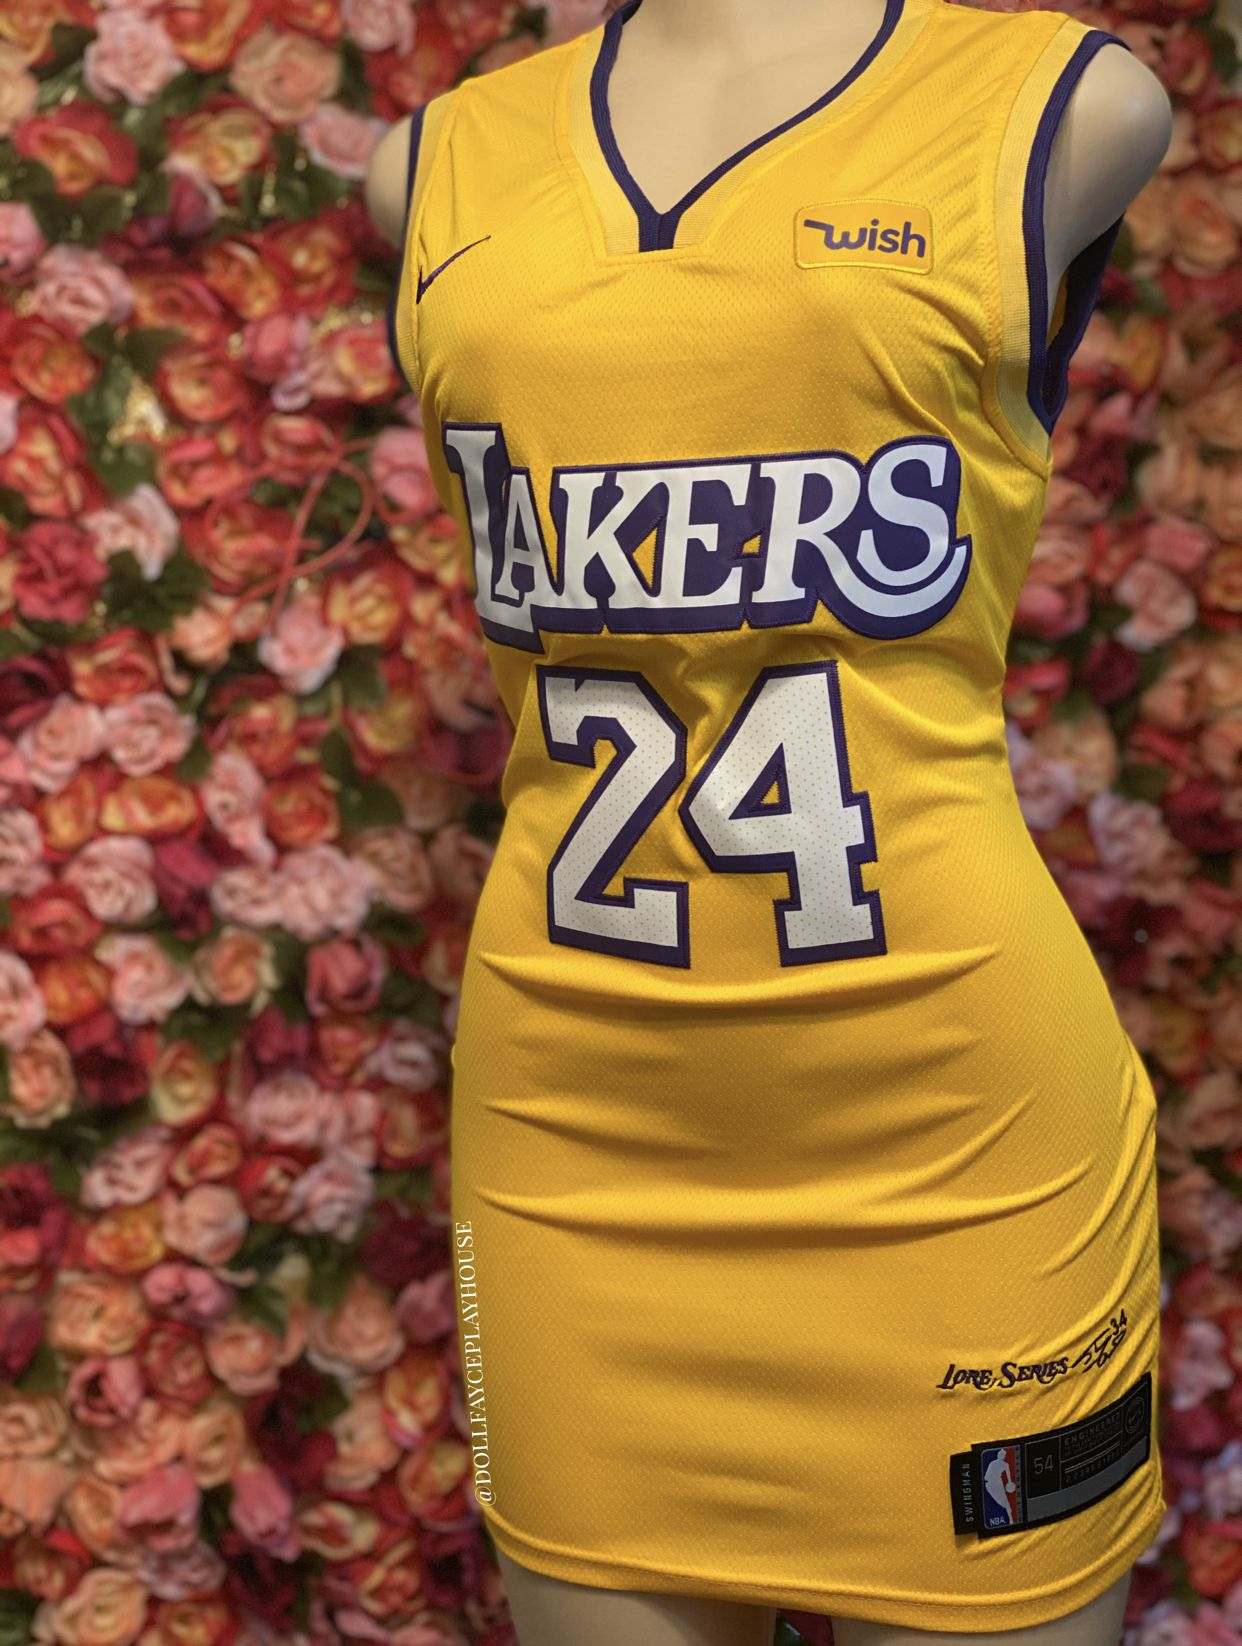 Lakers bryant throwback jersey dress in 2020 justice